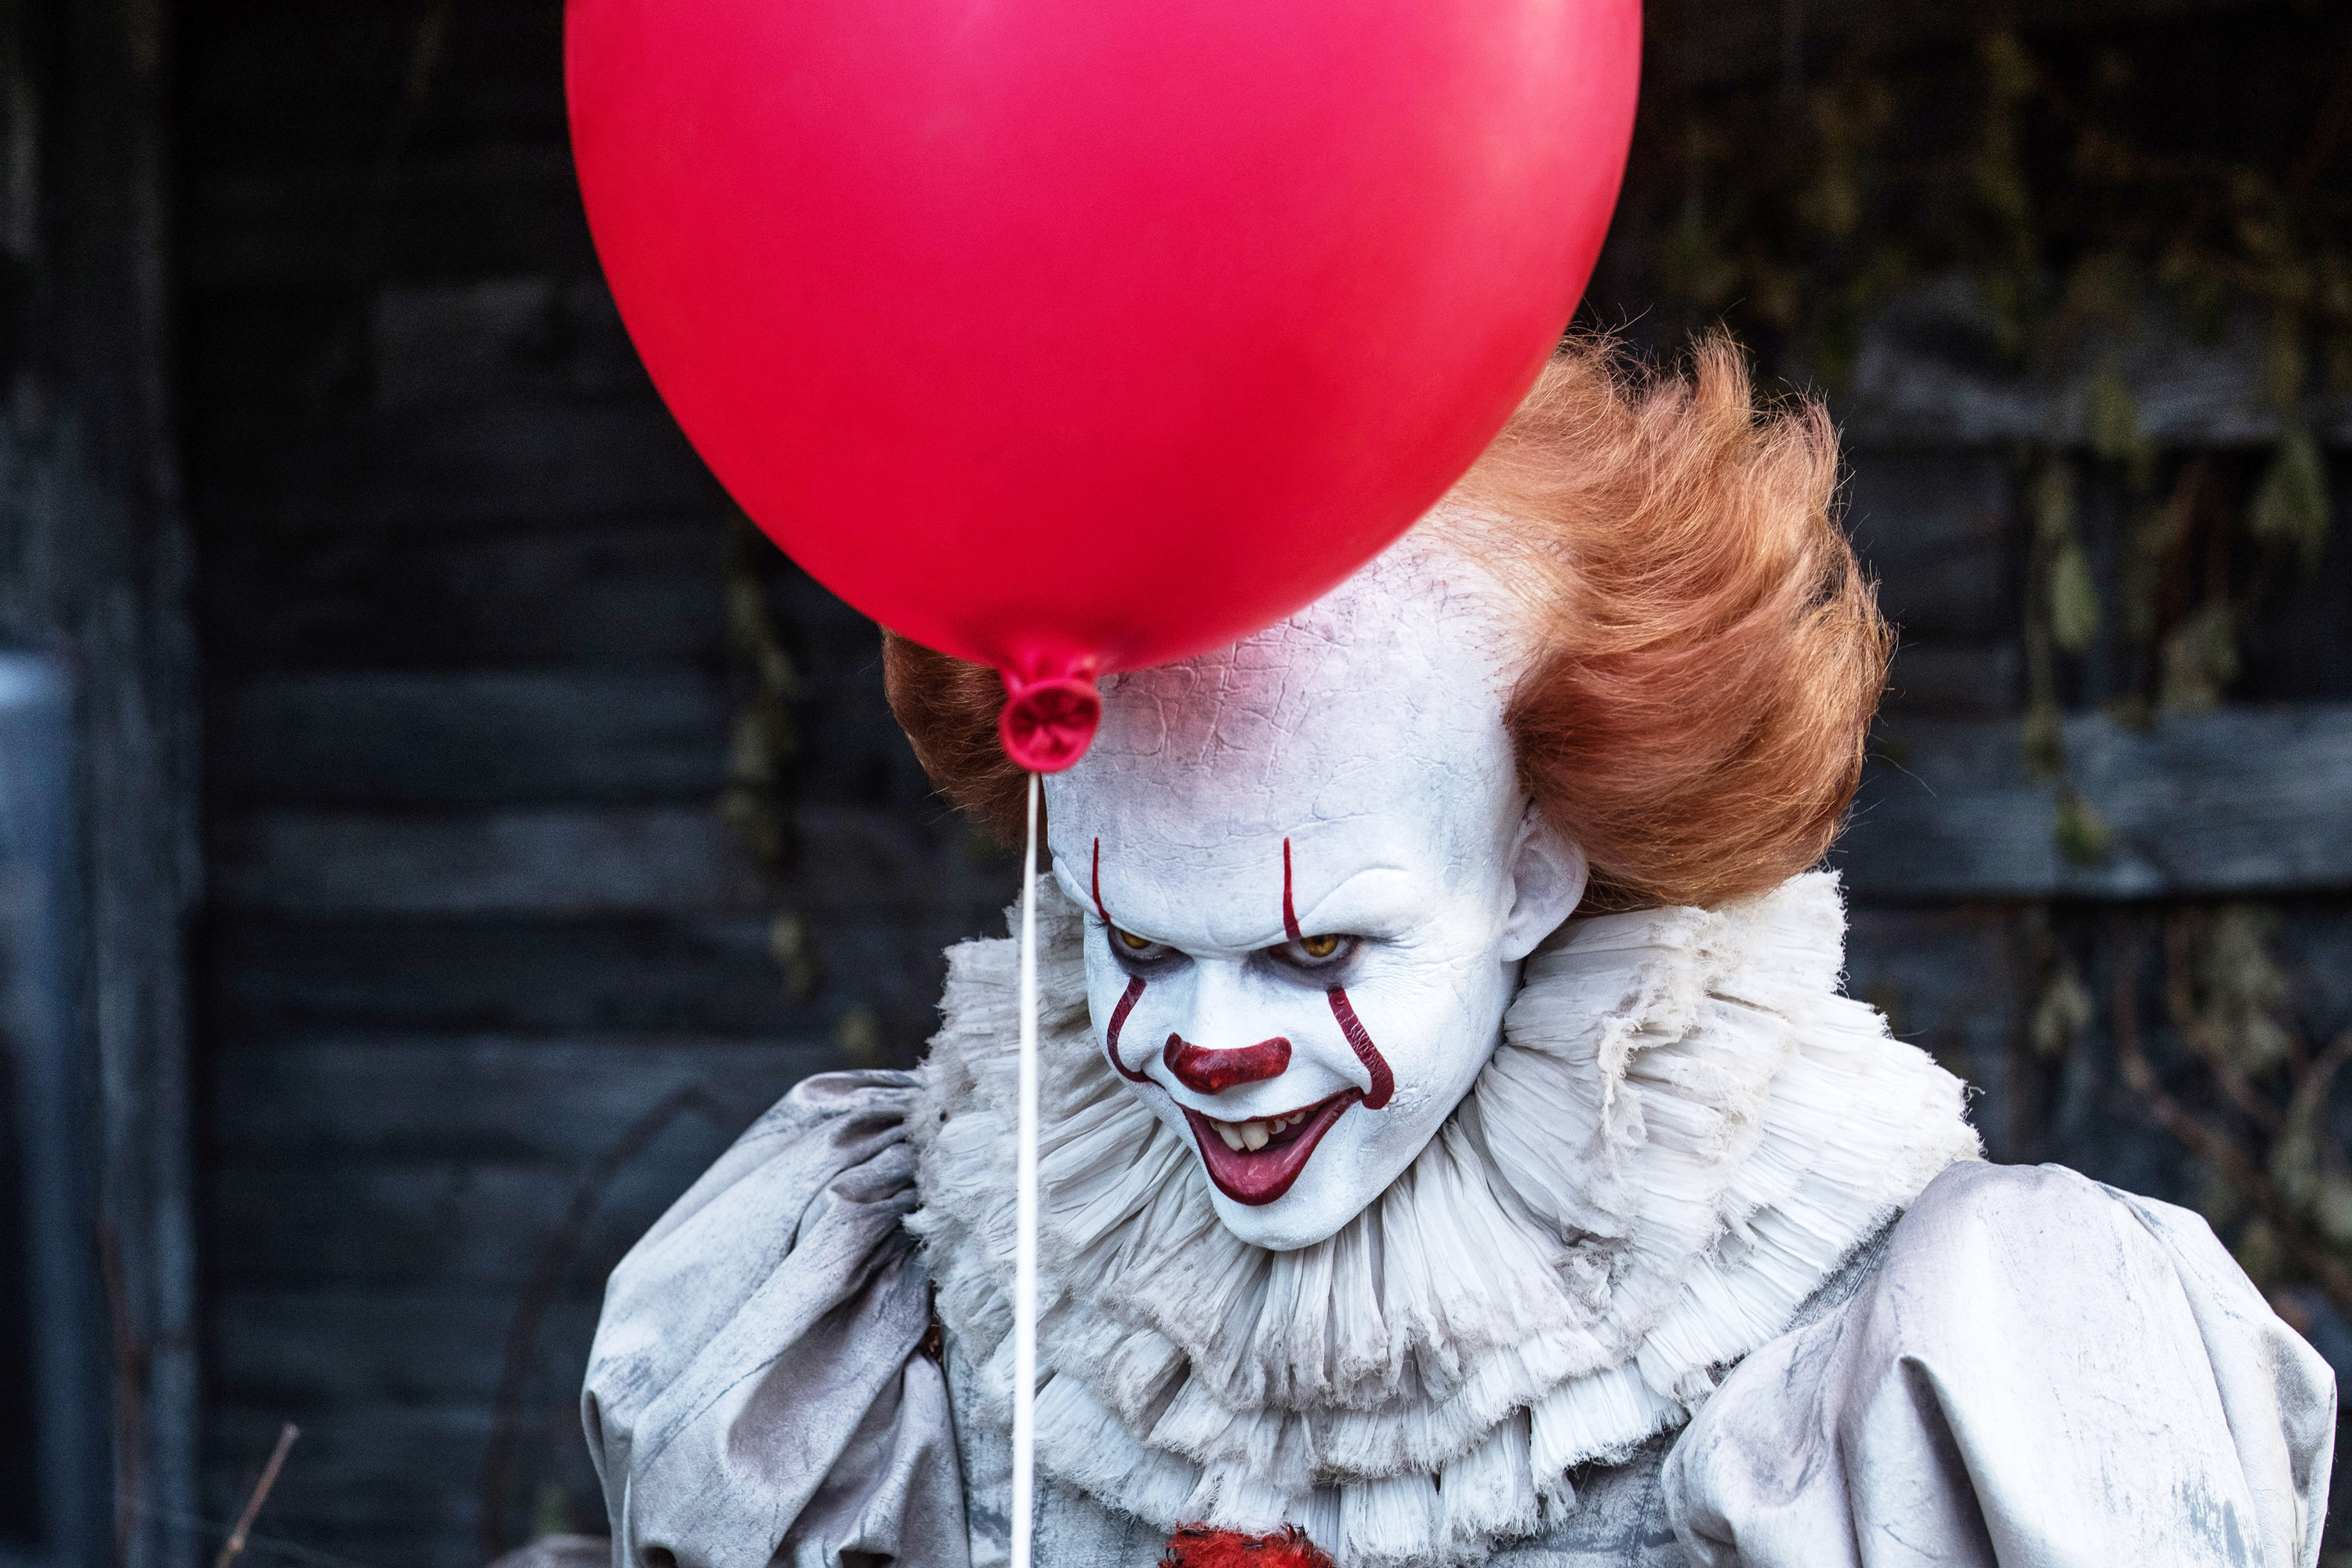 Bill Skarsgard as Pennywise with a red balloon